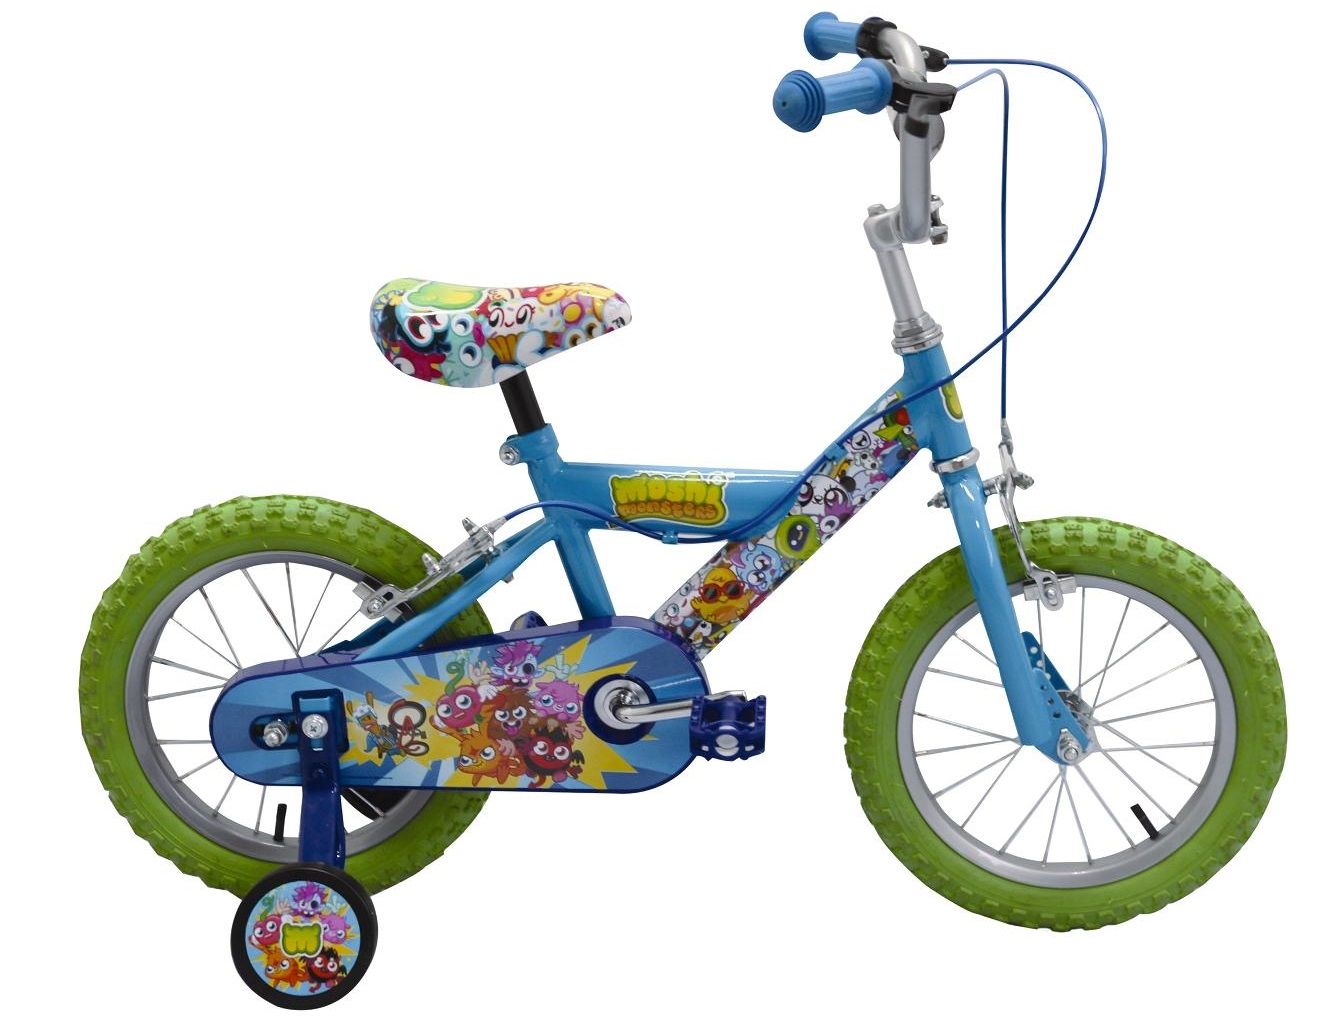 Moshi Monsters 14 inch BMX-Style Bike